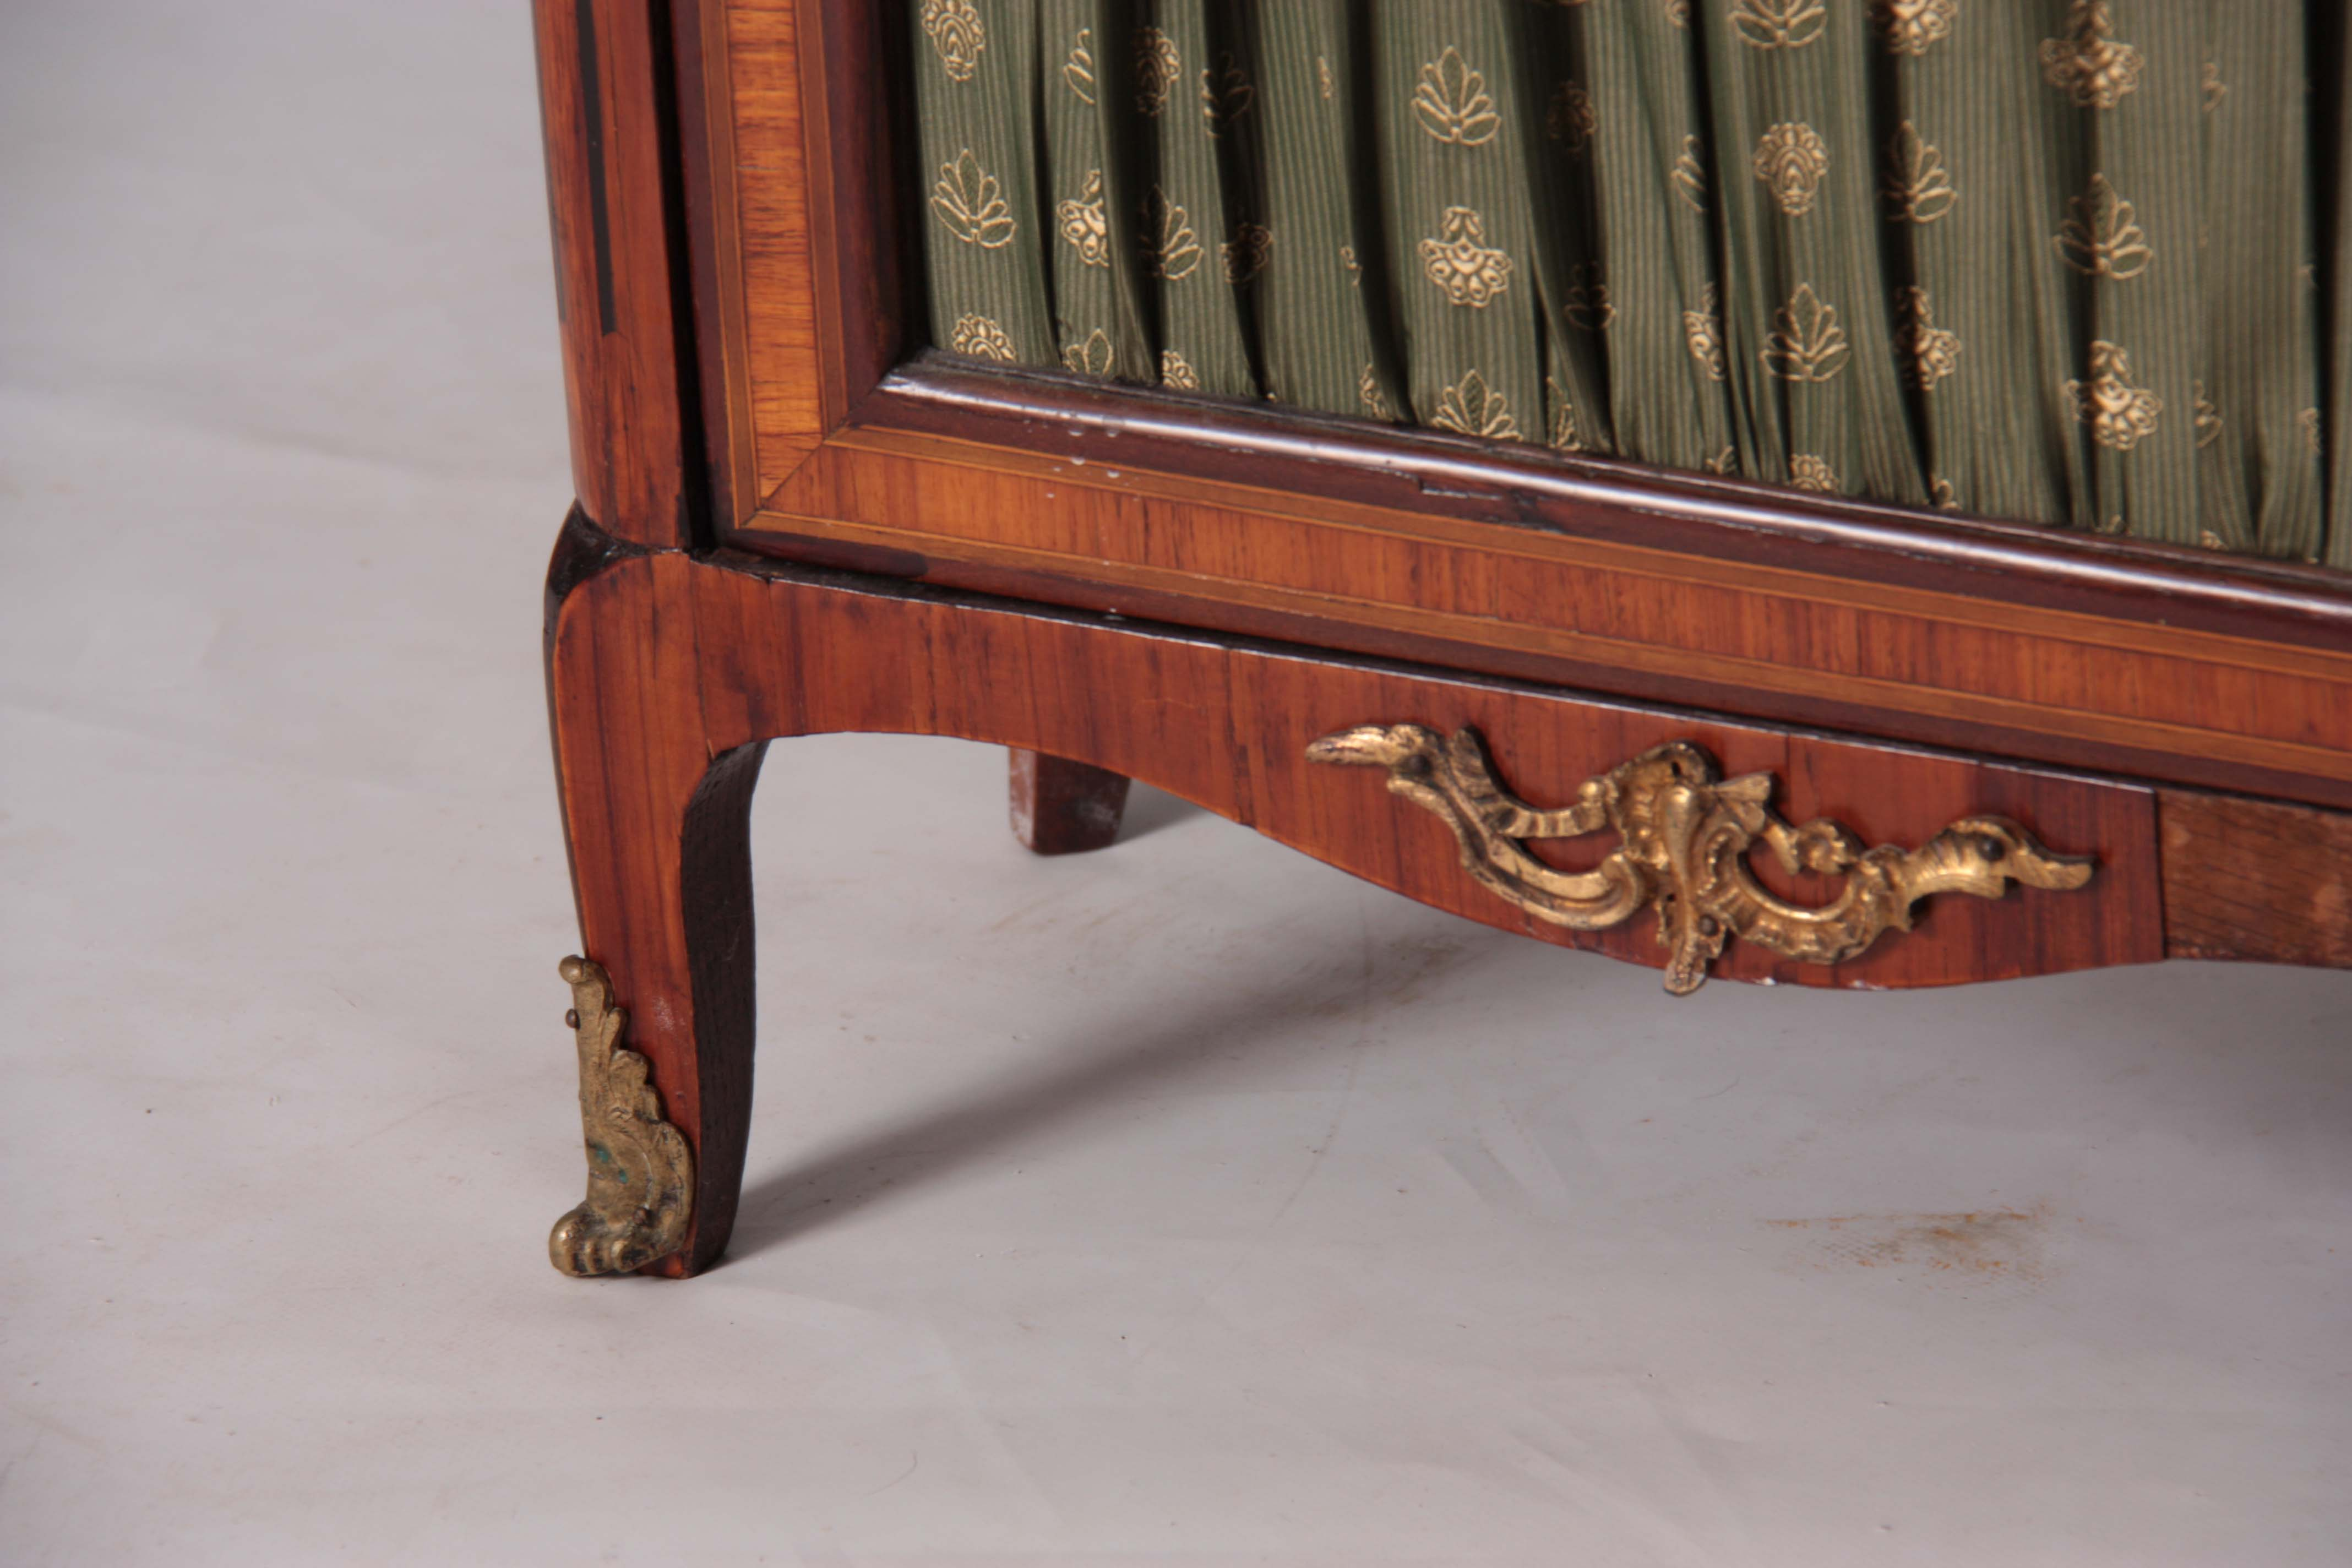 Lot 1164 - AN EARLY 19TH CENTURY LOUIS XI STYLE INLAID KINGWOOD SMALL SIDE CABINET with marble top and hinged